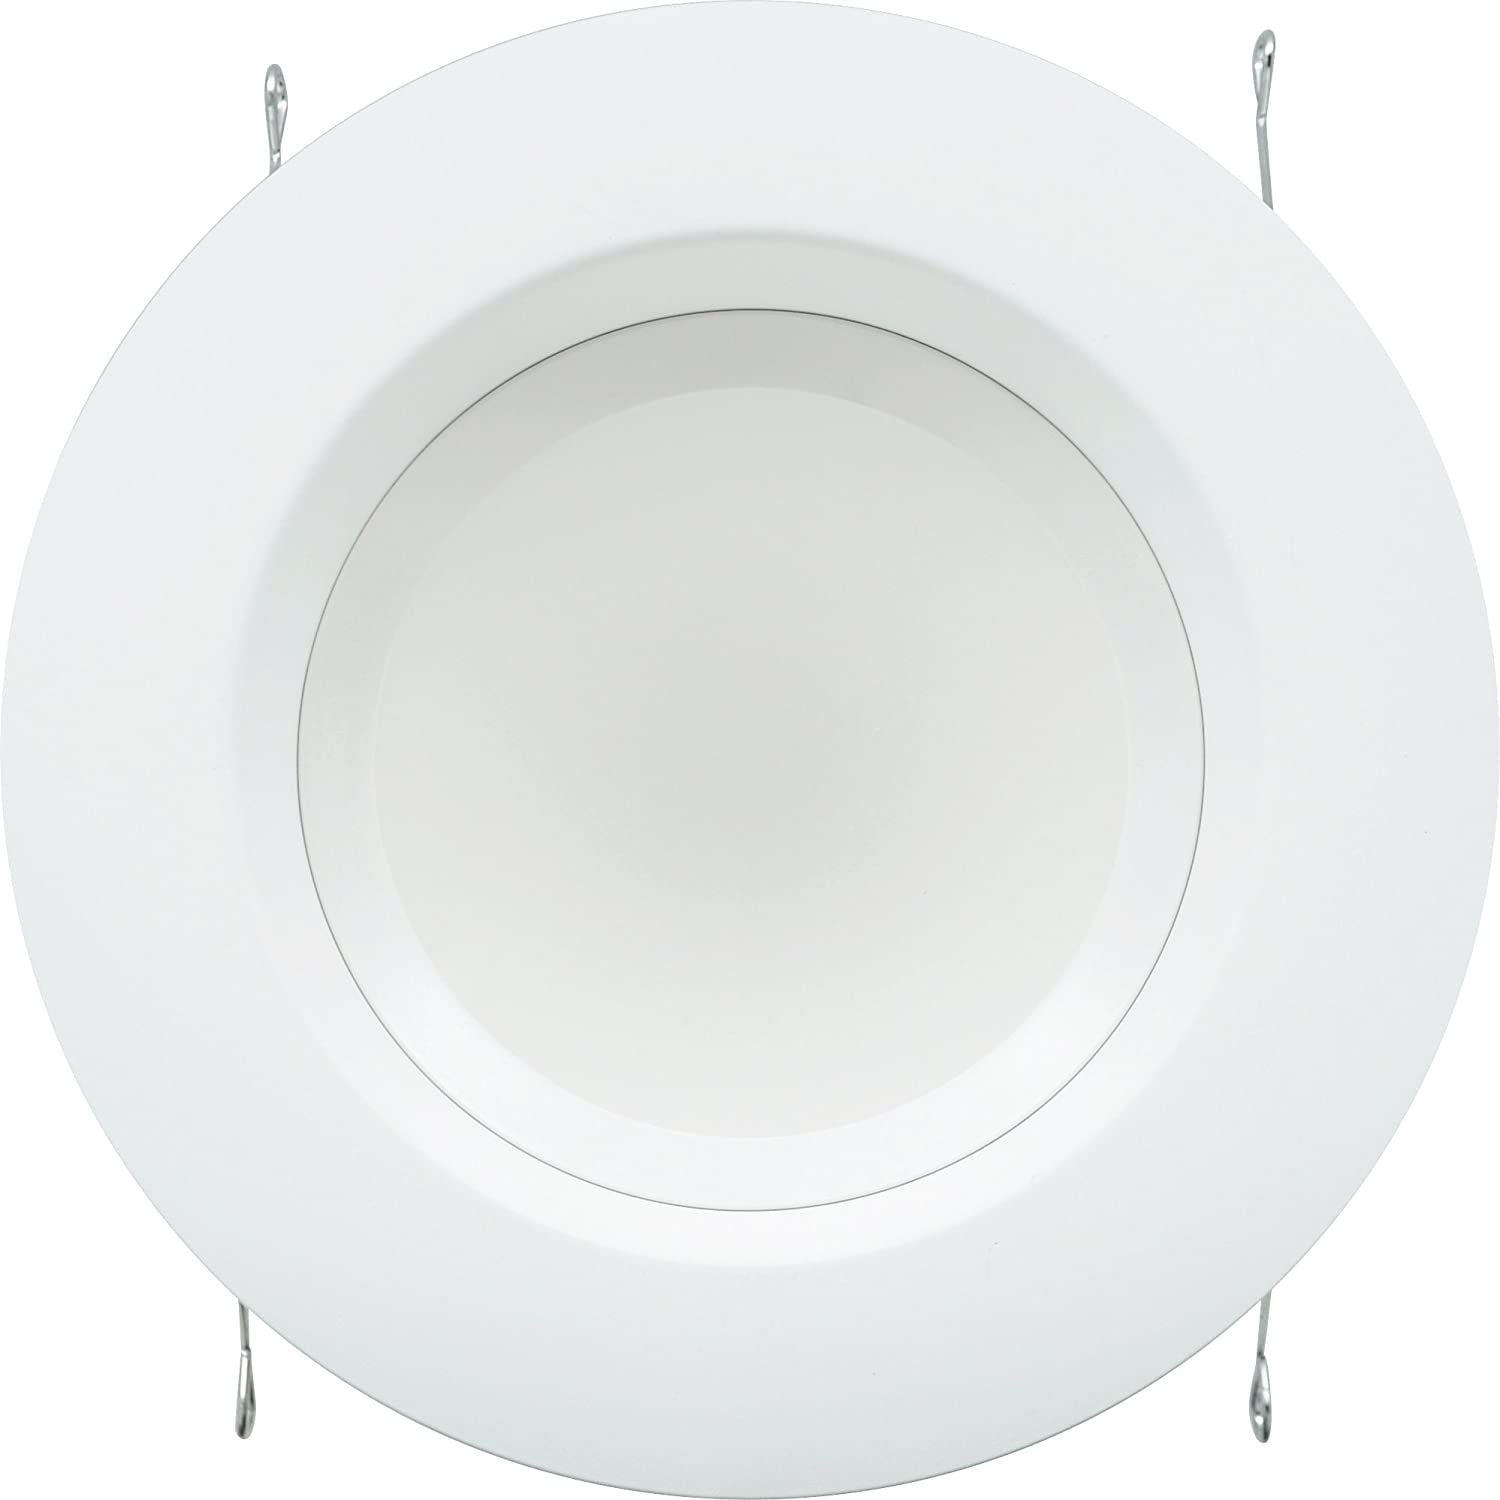 sylvania 70420 ultra led 6 inch downlight recessed kit replaces item